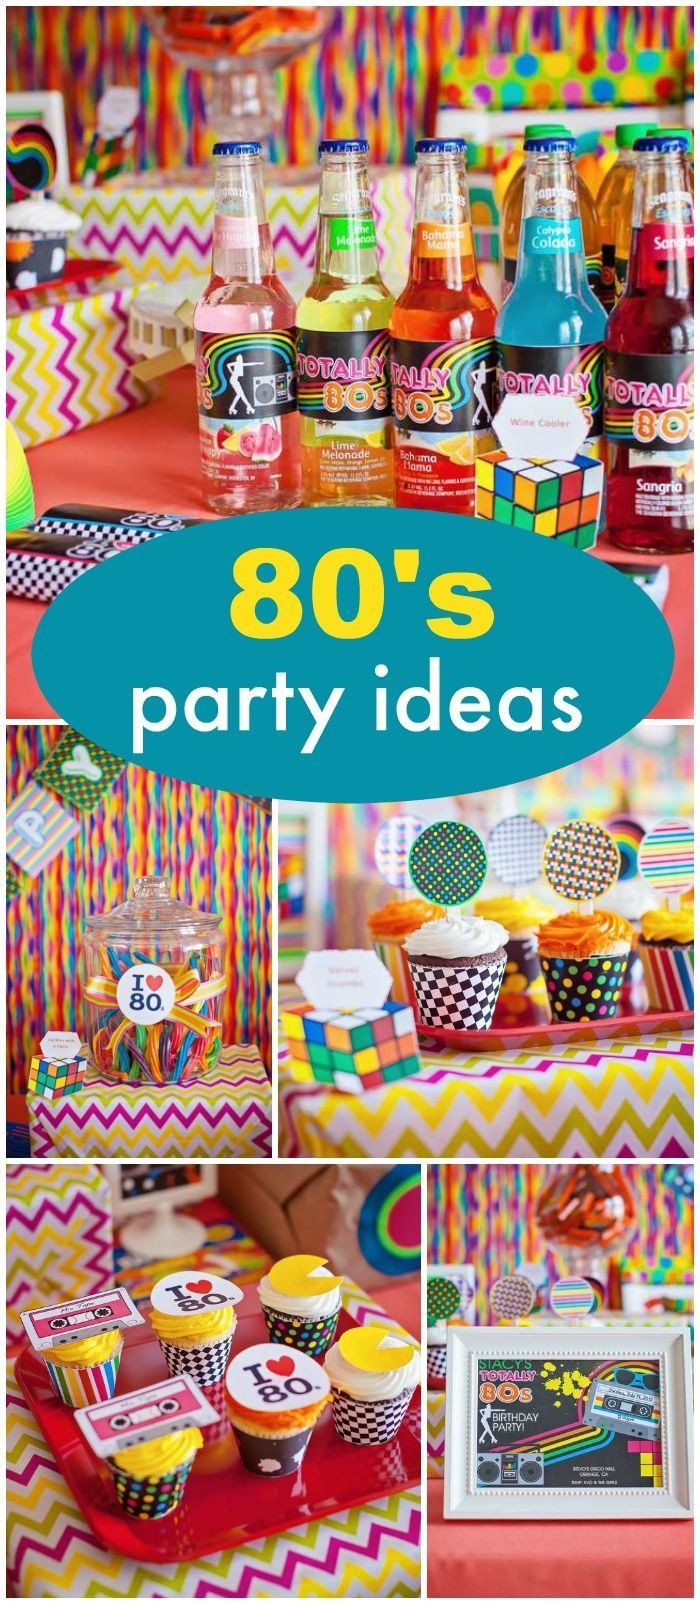 Centerpiece Ideas For Birthday Party Awesome How Cool Is This 30th Birthday With An 80 S Theme See M 80s Theme Party 80s Birthday Parties 30th Birthday Parties